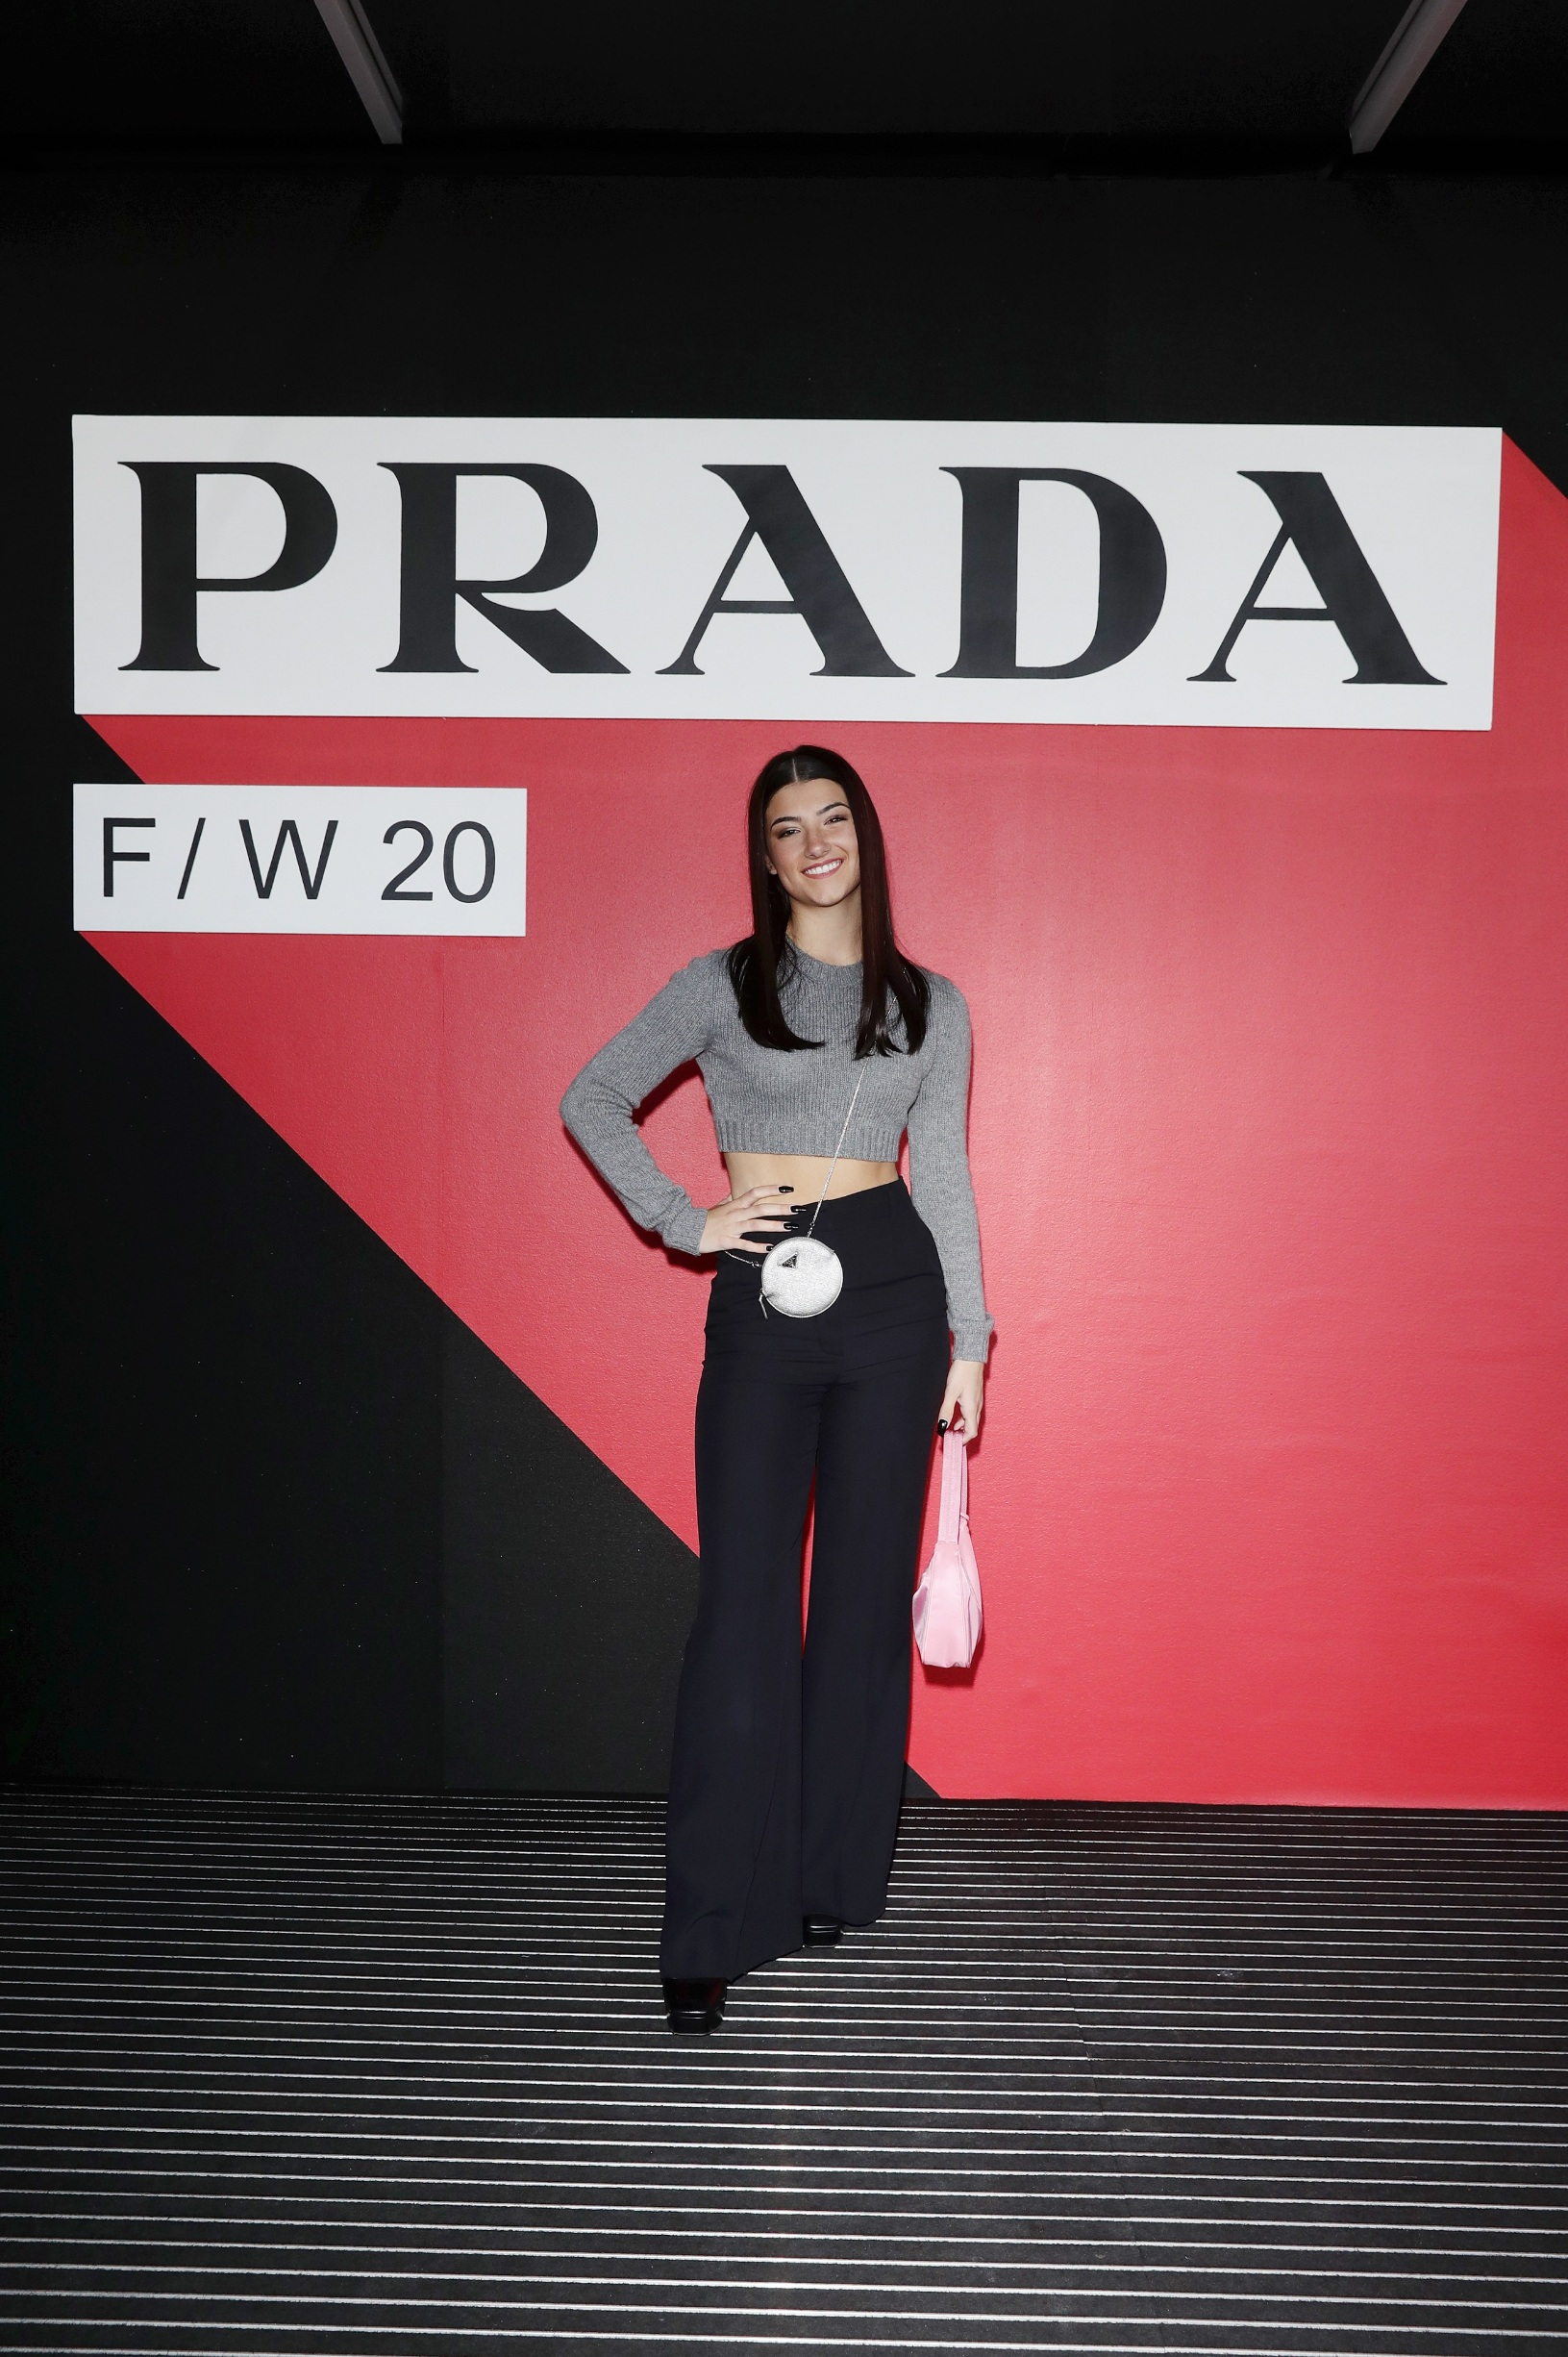 MILAN, ITALY - FEBRUARY 20: Charli D'Amelio attends the Prada show during Milan Fashion Week Fall/Winter 2020/2021 on February 20, 2020 in Milan, Italy. (Photo by Vittorio Zunino Celotto/Getty Images for Prada)